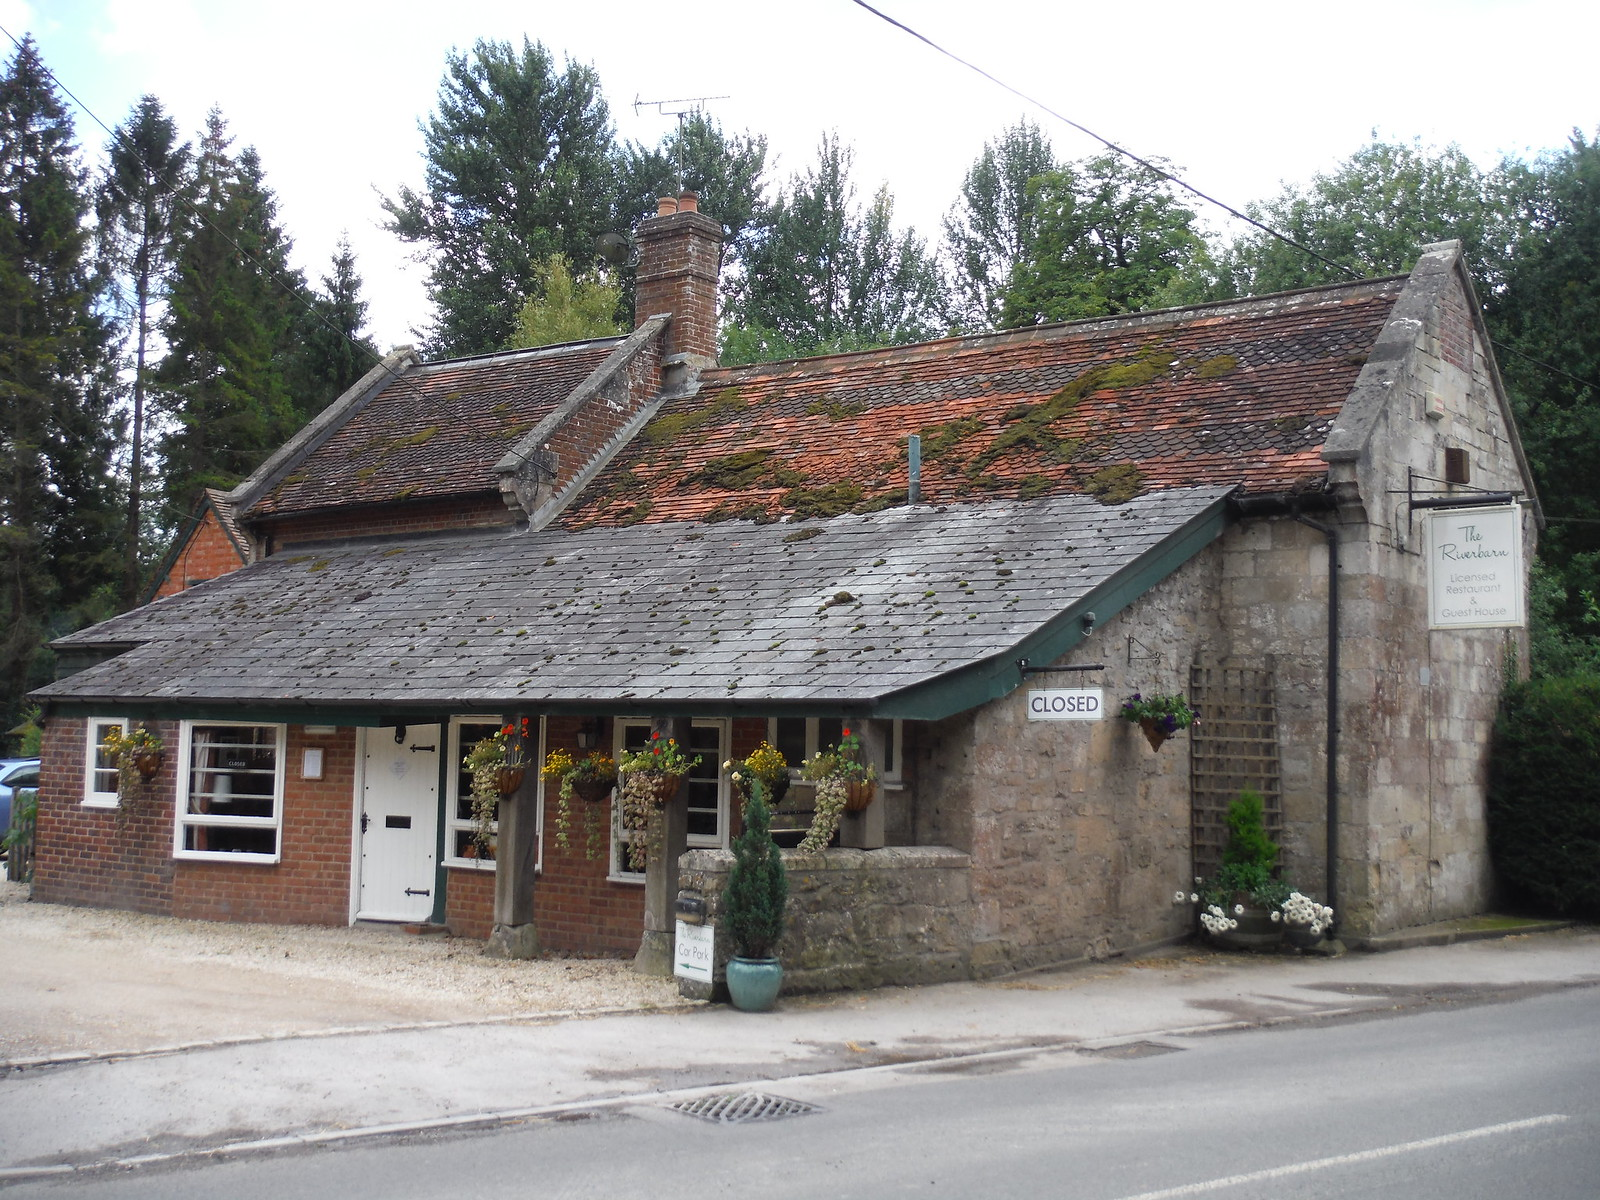 The Riverbarn, Fonthill Bishop SWC Walk 248 Tisbury Circular via Hindon